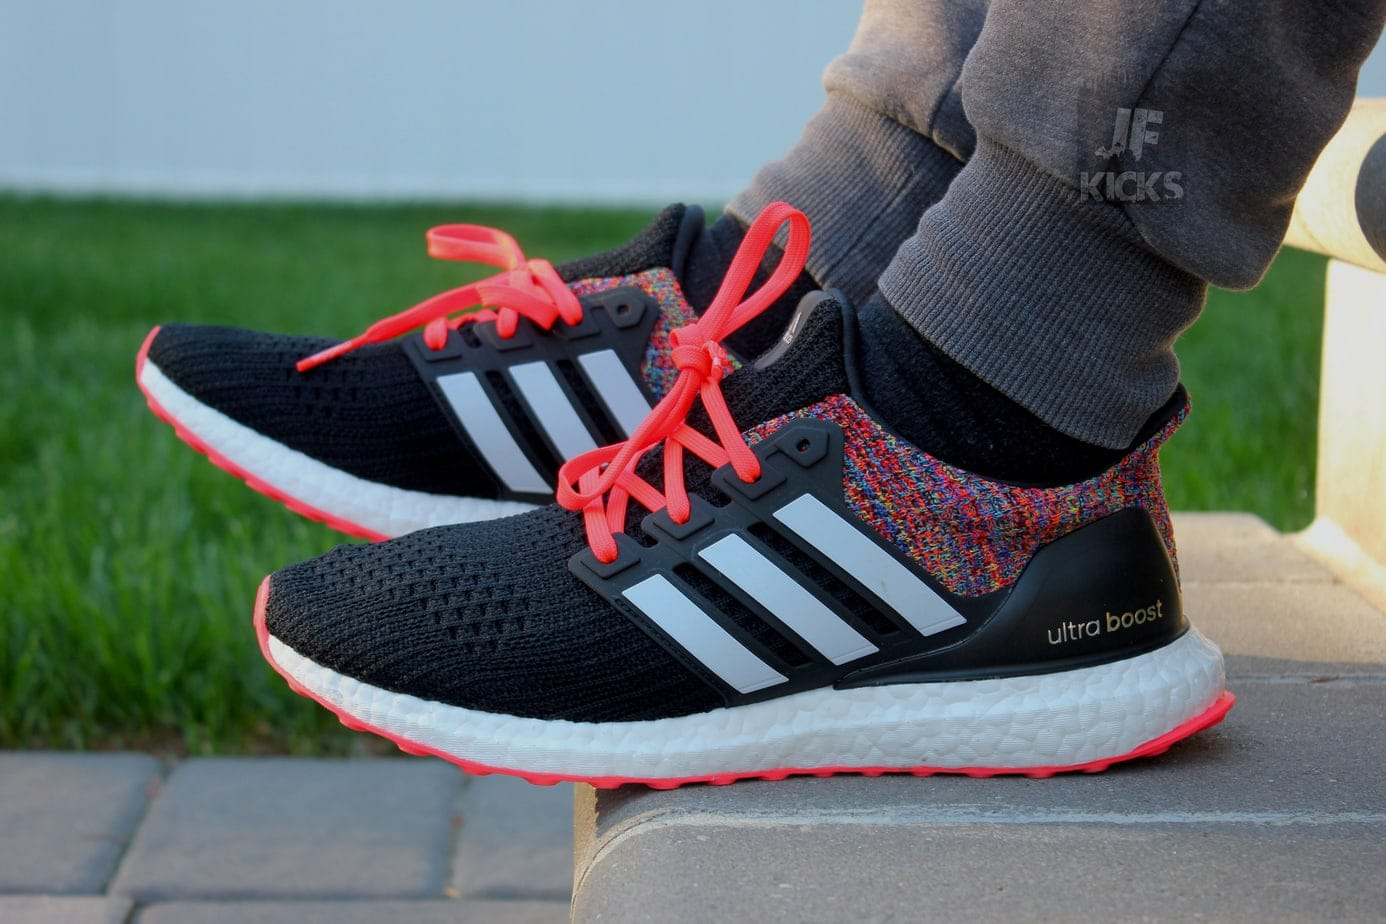 f42c0f42f We gave the process a shot and created our own custom Ultra Boost  Multicolor